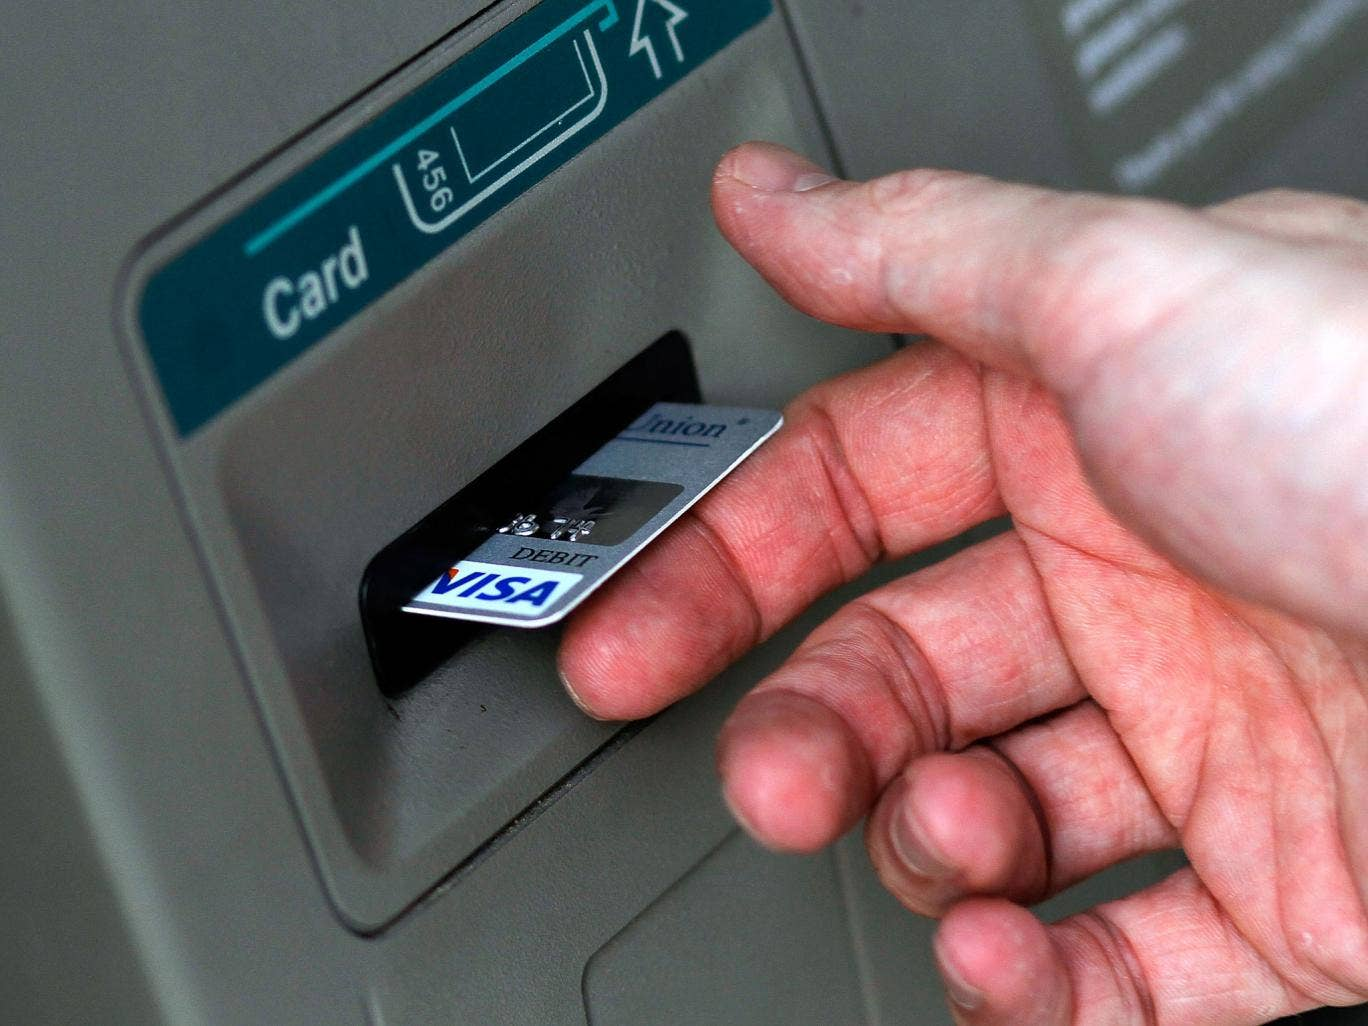 Customers without smartphones would be able to use similar technology at cashpoints or bank branches